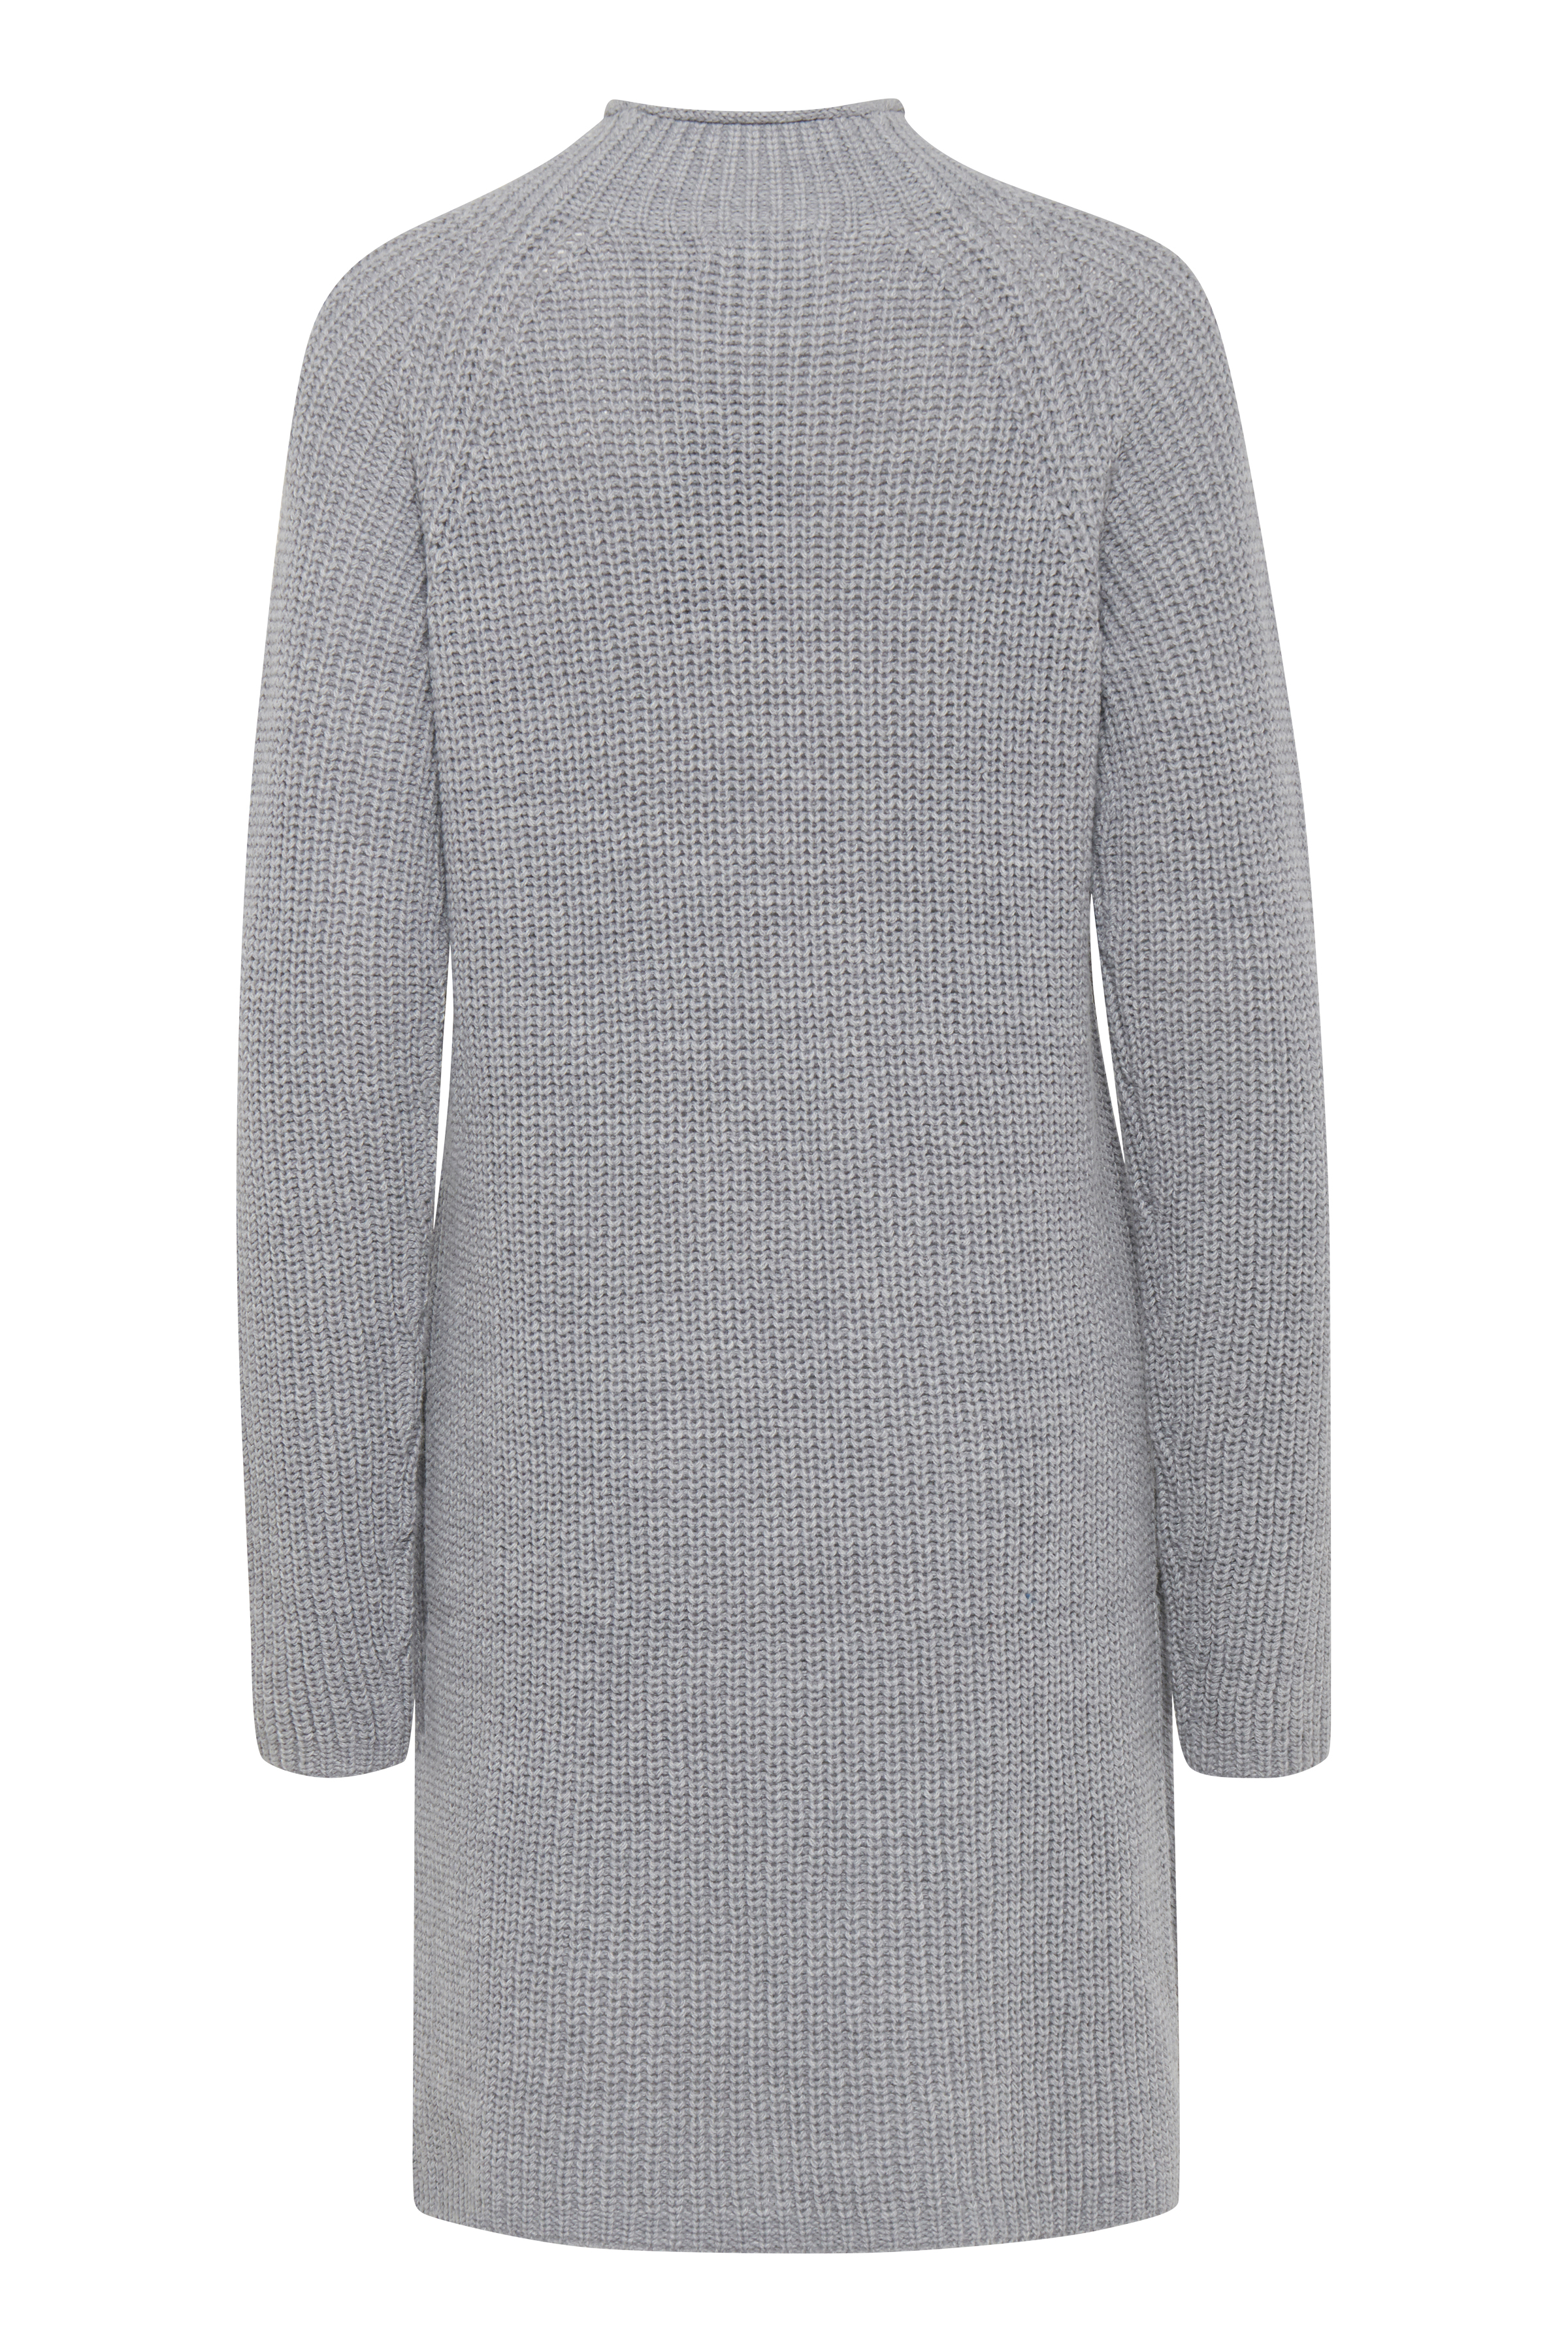 Med. Grey Mel. Knitted tunic from b.young – Buy Med. Grey Mel. Knitted tunic from size XS-XXL here